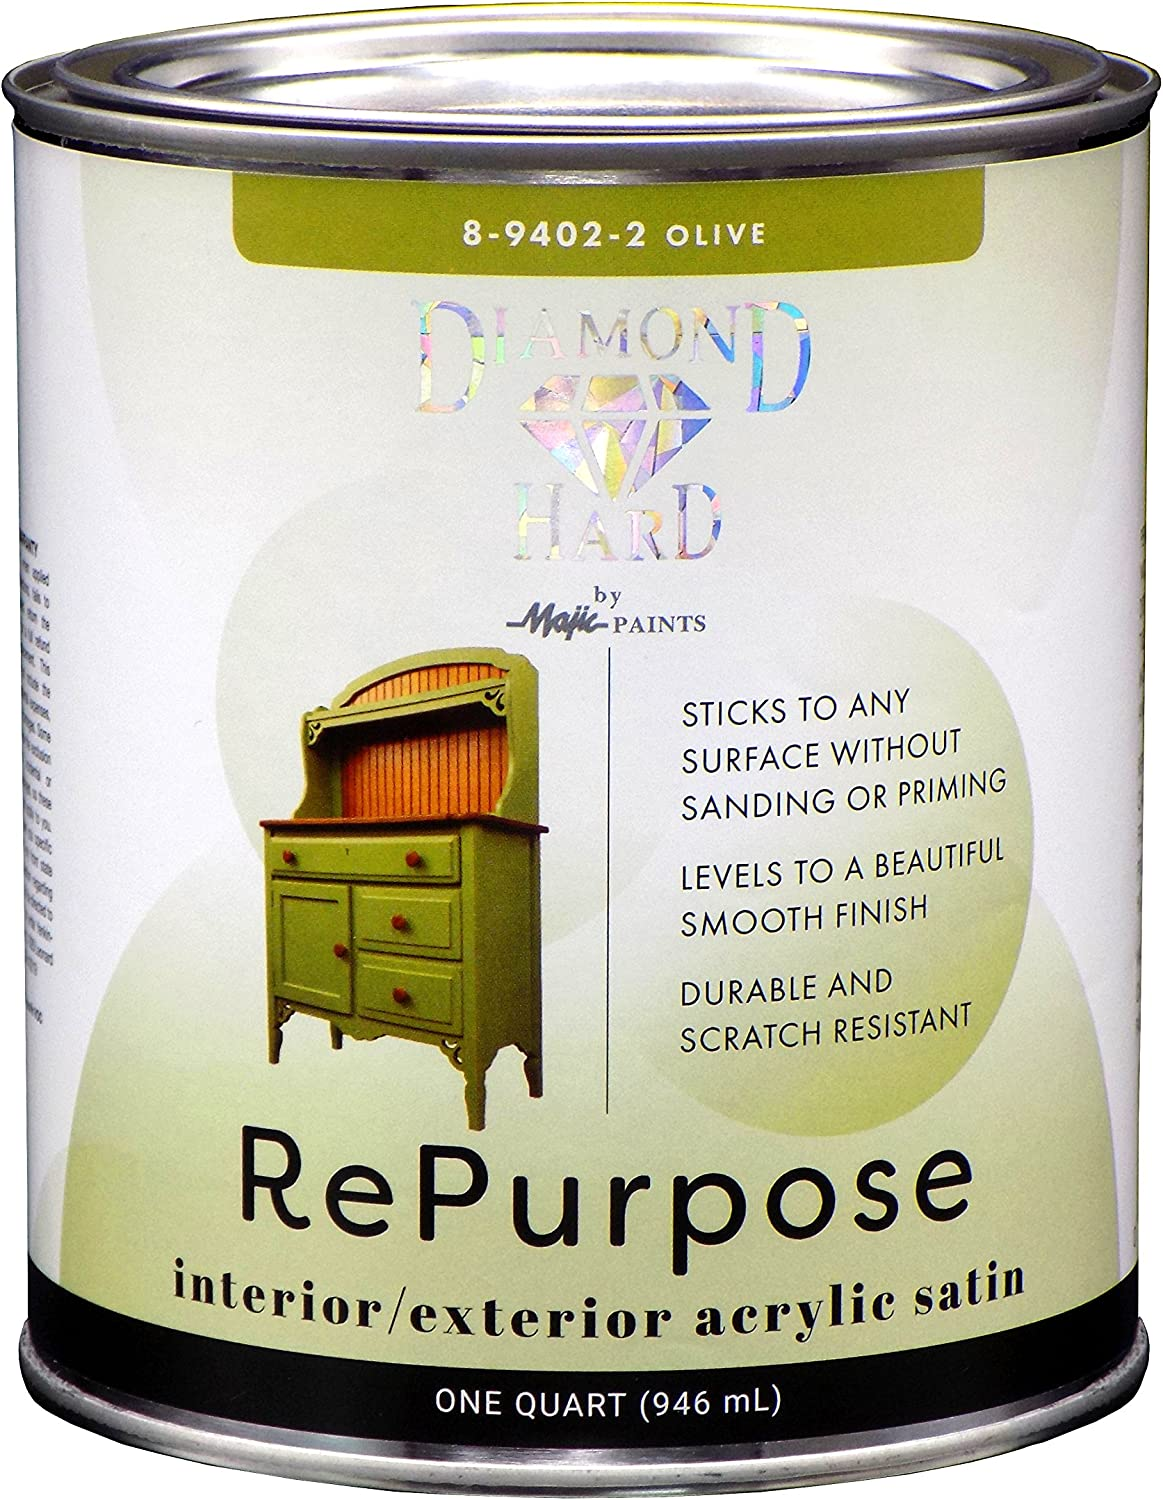 Majic Paints 8-9402-2 Diamond Hard Interior/Exterior Satin Paint RePurpose your Furniture, Cabinets, Glass, Metal, Tile, Wood and More, 1-Quart, Olive Green